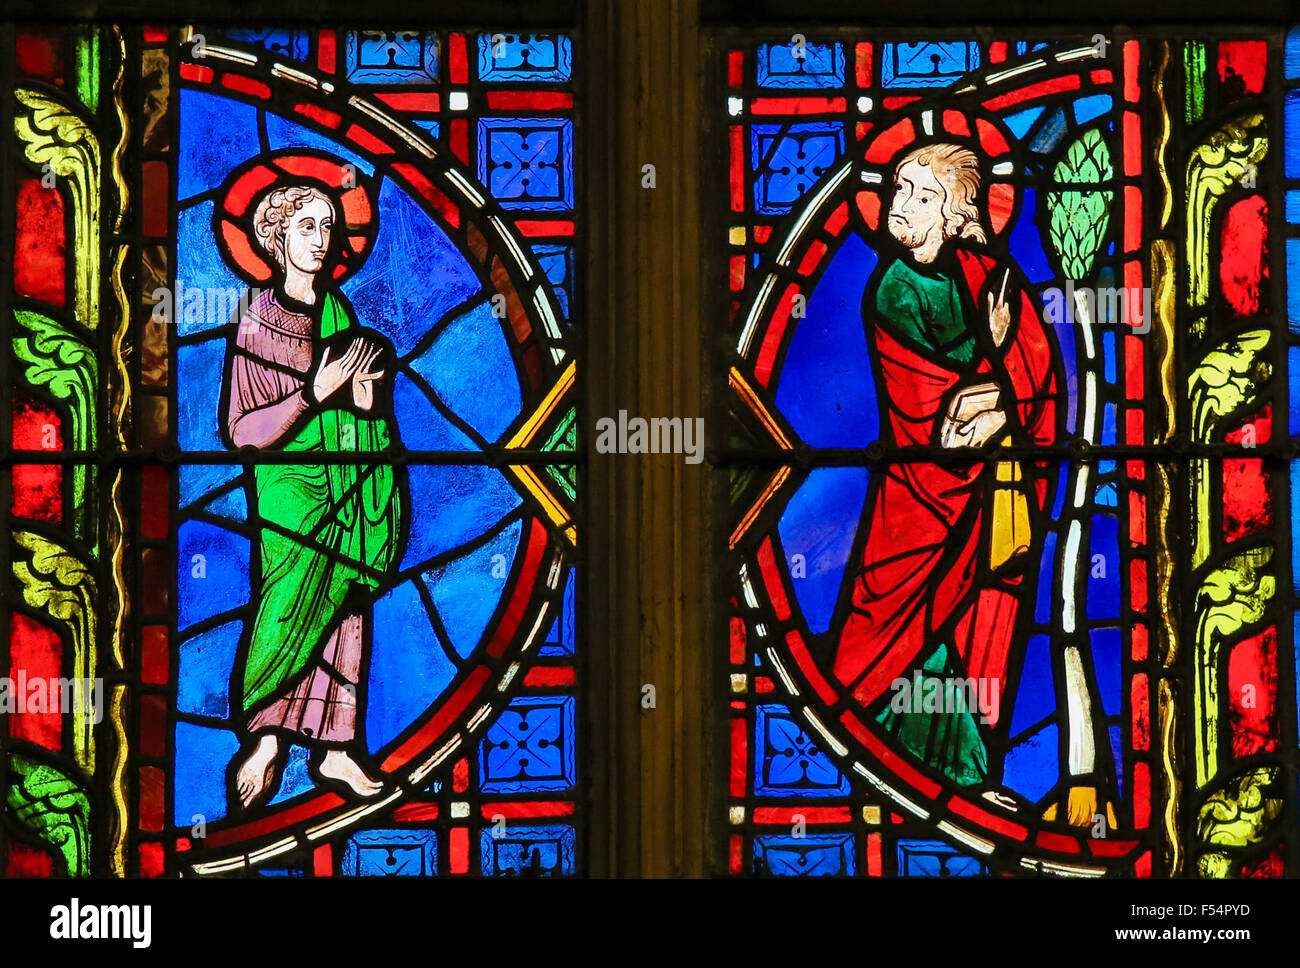 Stained glass window depicting Jesus and a Saint in the Cathedral of Tours, France. - Stock Image